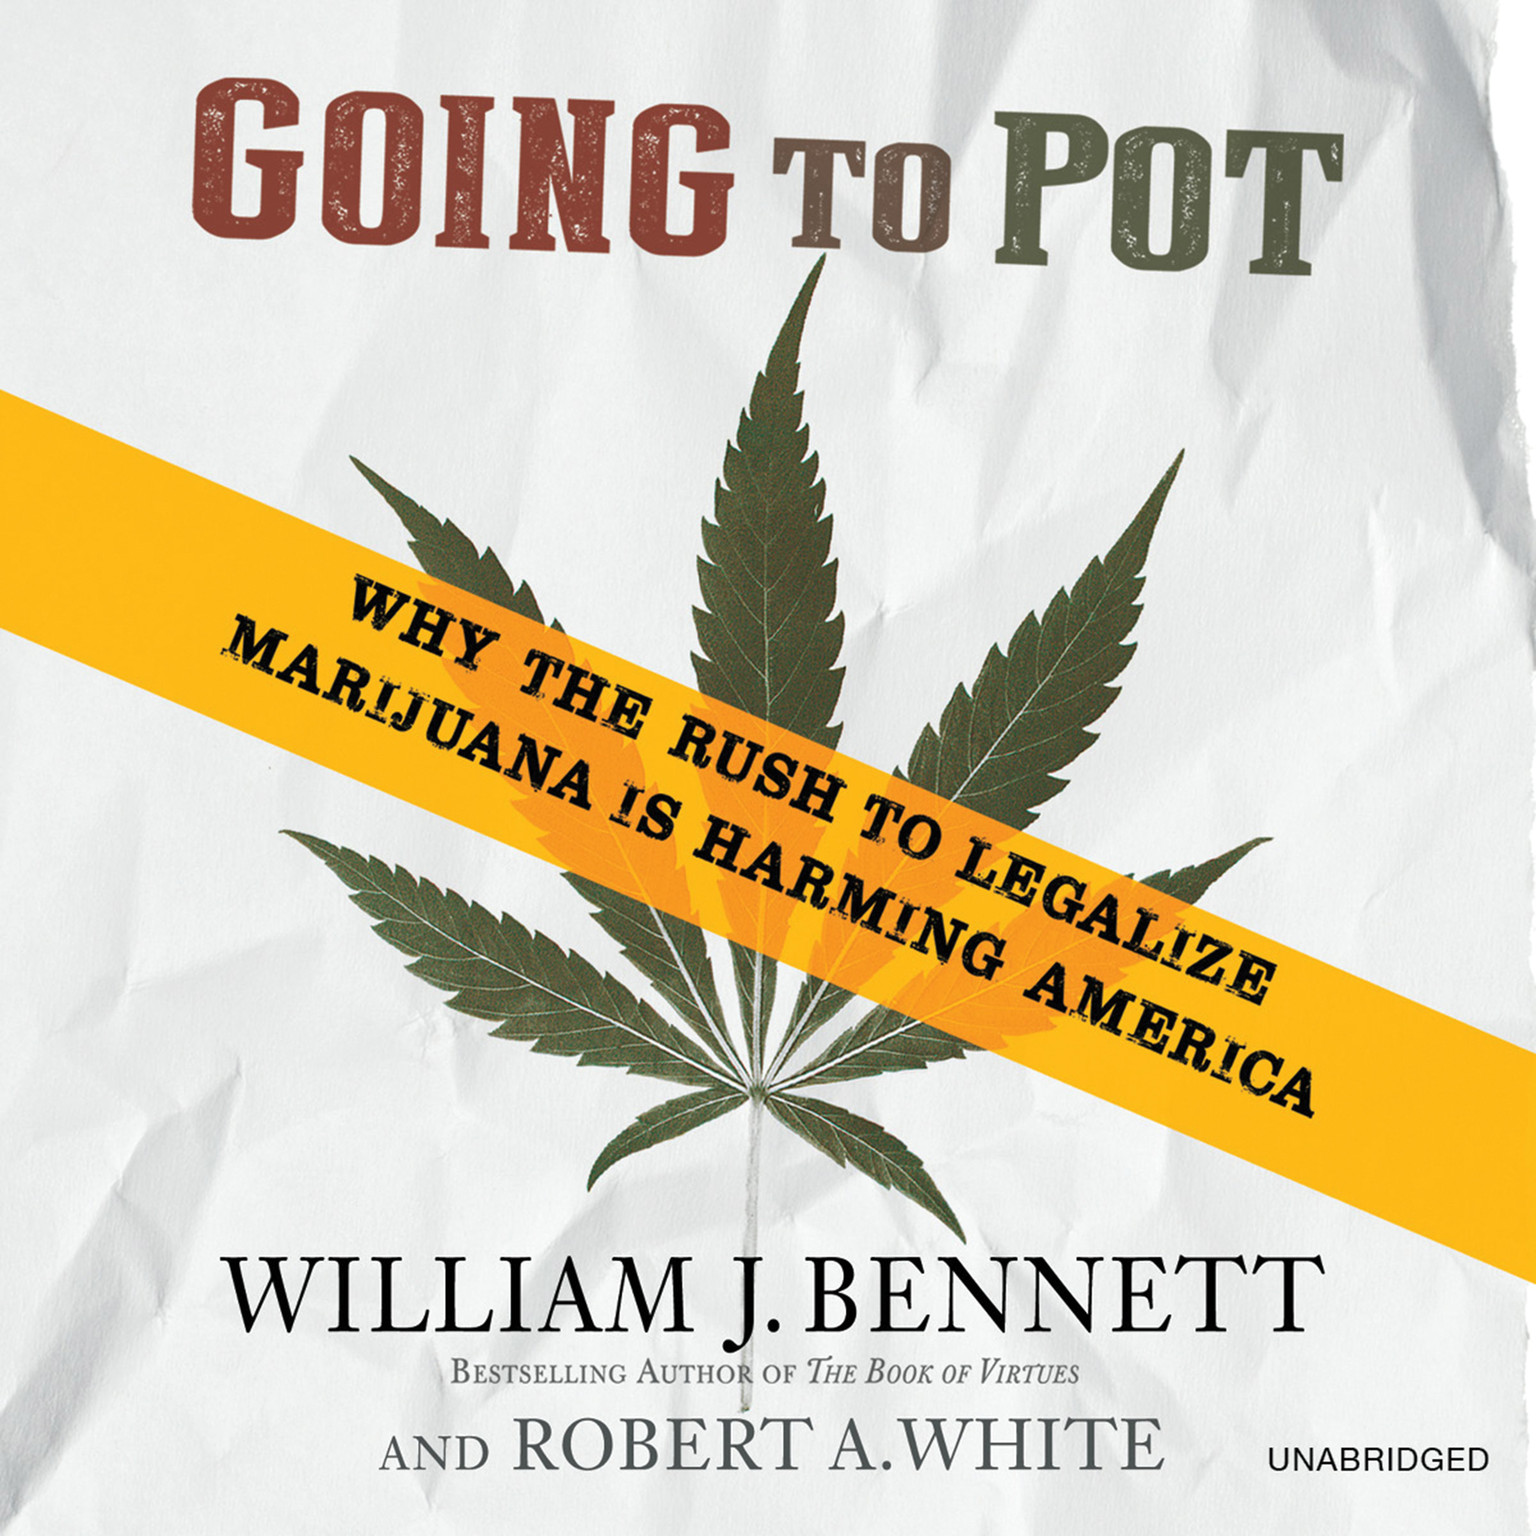 william j bennett drug legalization Mr bennett discussed surgeon general joycelyn elder's comments that legalization of drugs would help to lower crime in the united states  drug legalization  william bennett talked about.